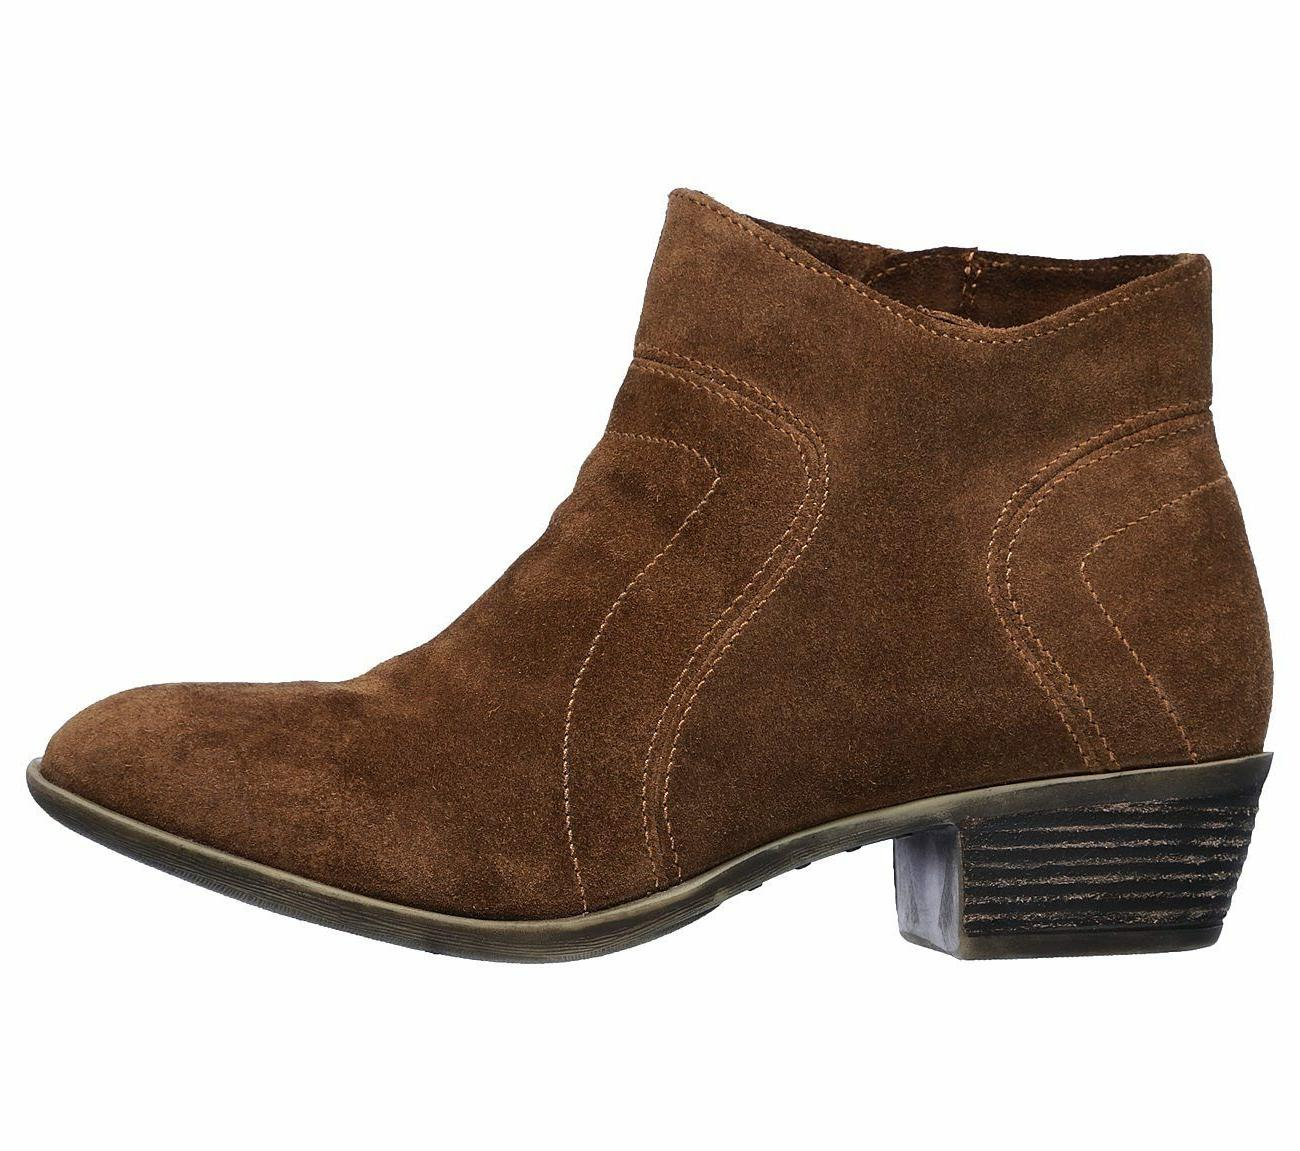 New Suede Ankle Boots 48719 Brown pr